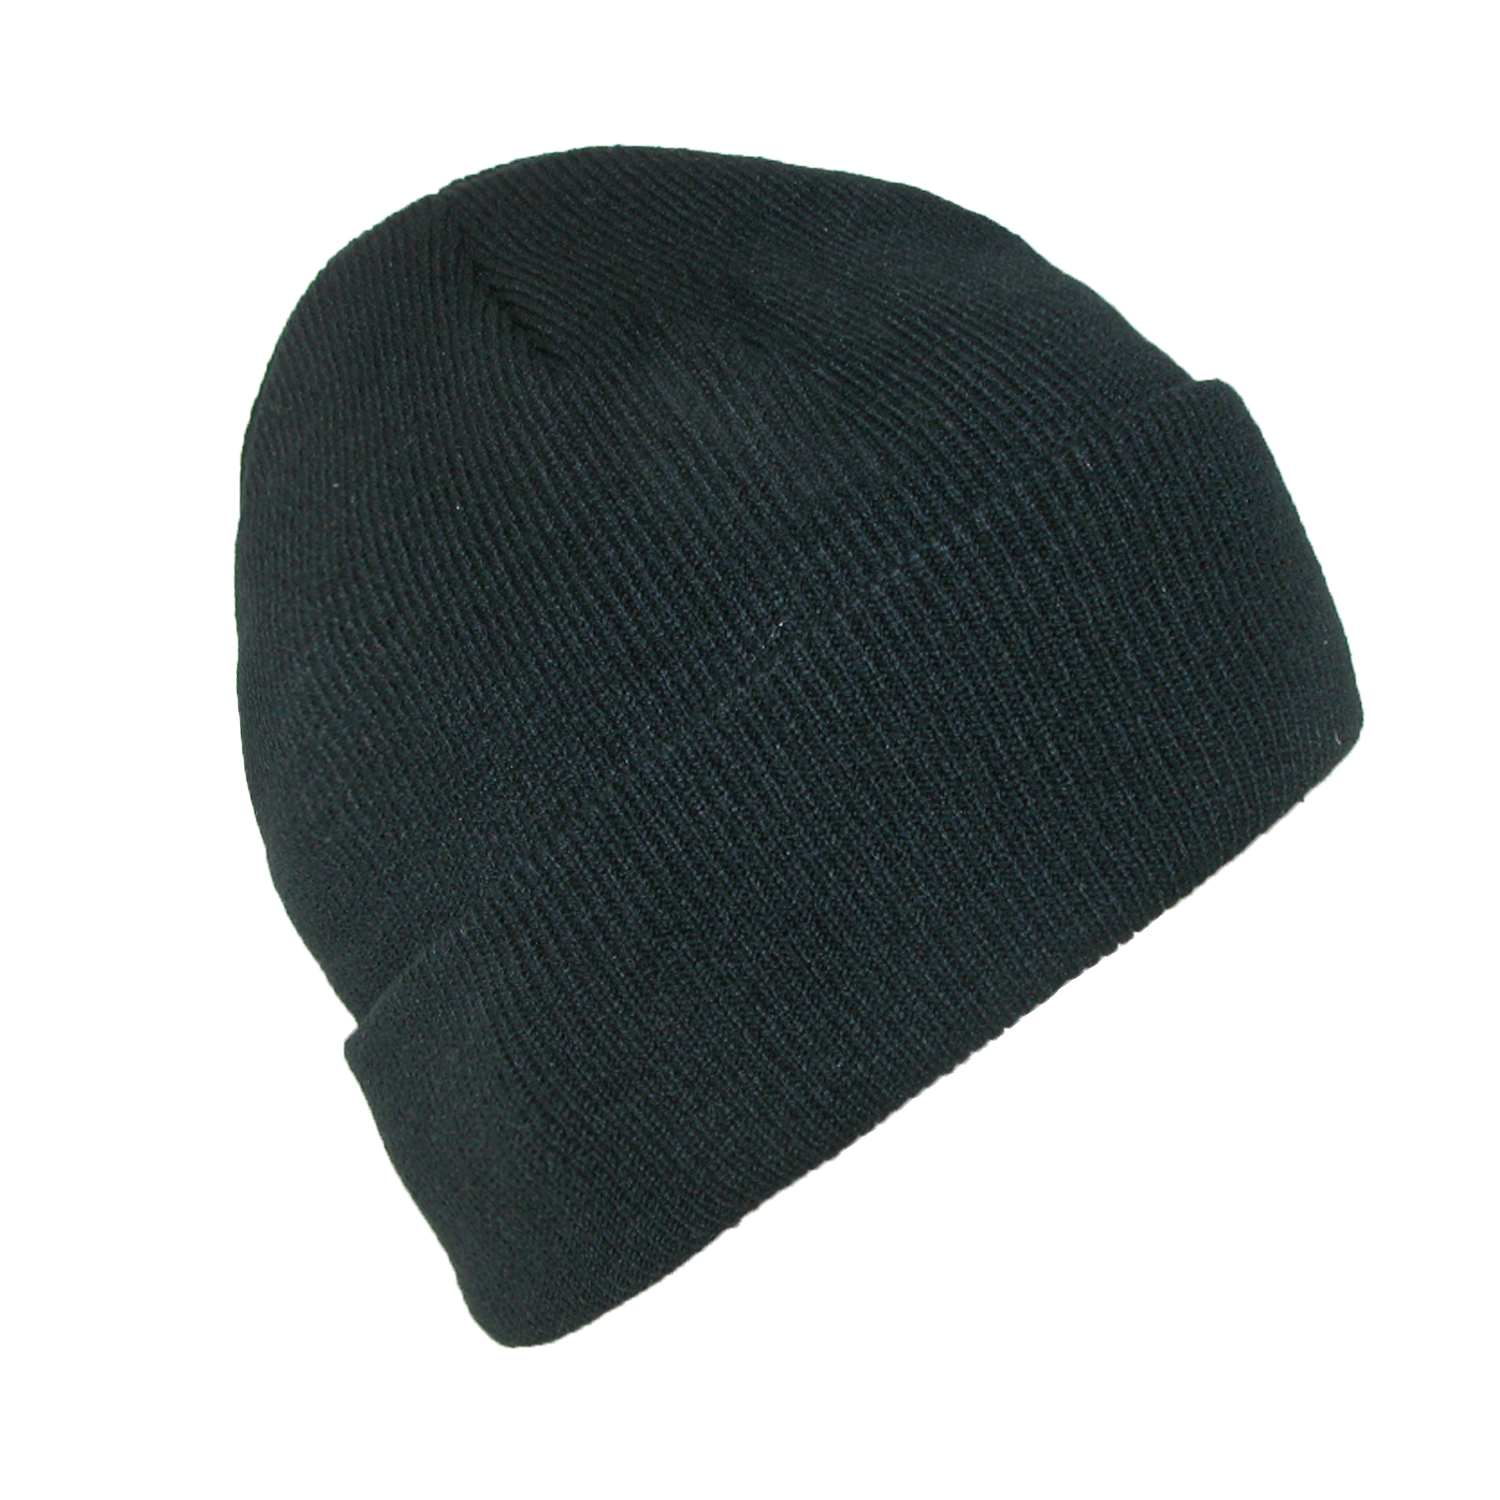 870bb34d44a44 Magg - Mens Insulated Thermal Fleece Lined Comfort Daily Soft Beanies  Winter Hats (Gray Beanie) - Walmart.com